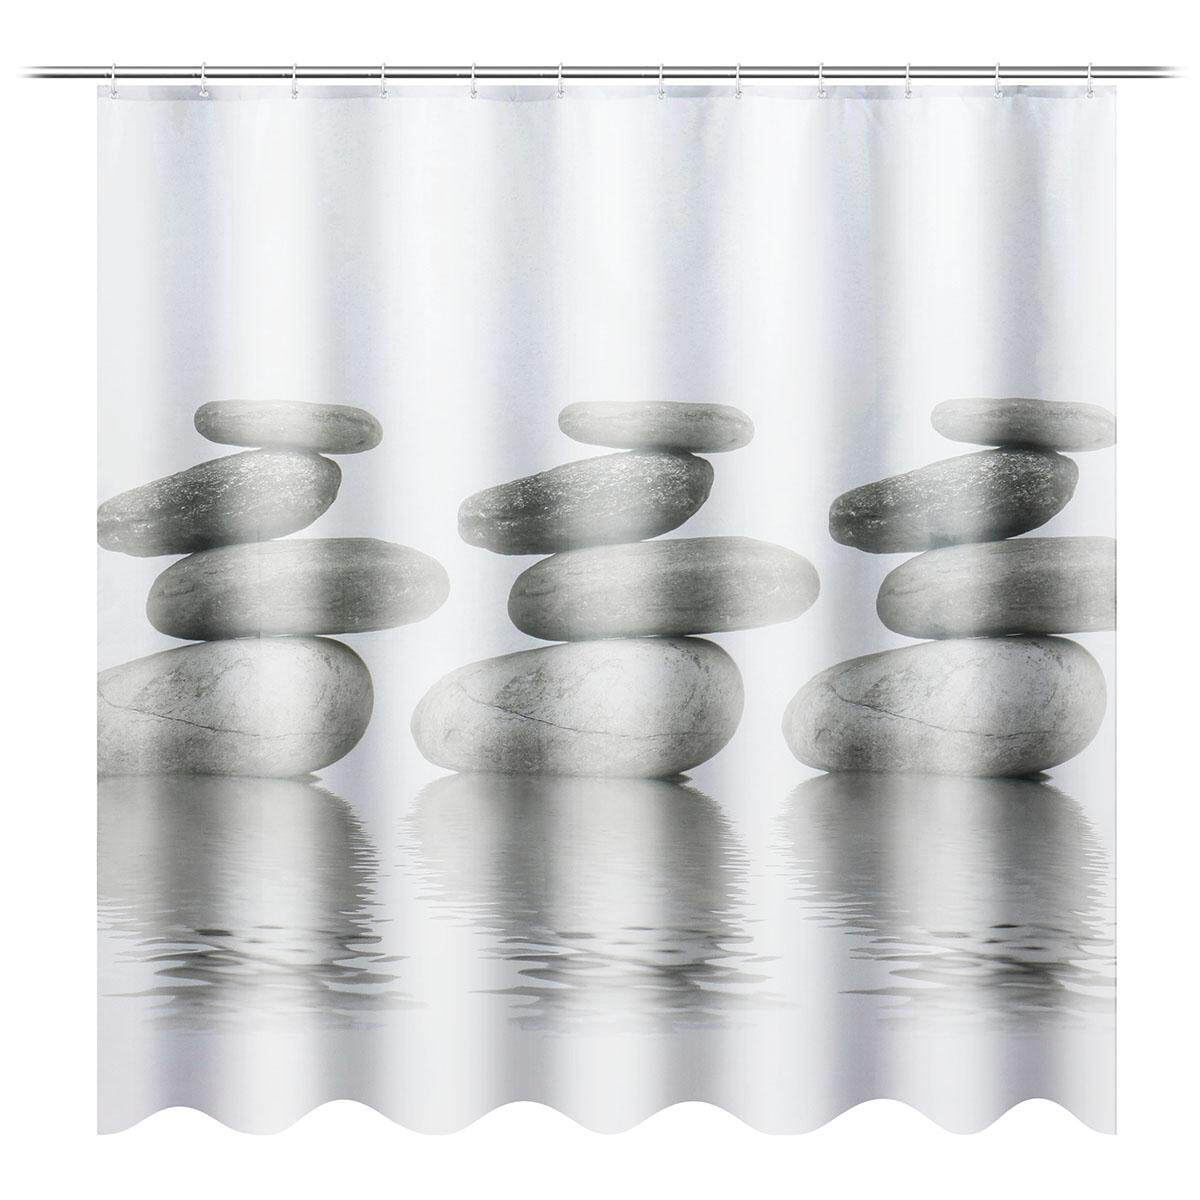 180x180cm Waterproof Cobble Shower Curtain Digital Art Bathroom With 12pcs Hooks By Freebang.